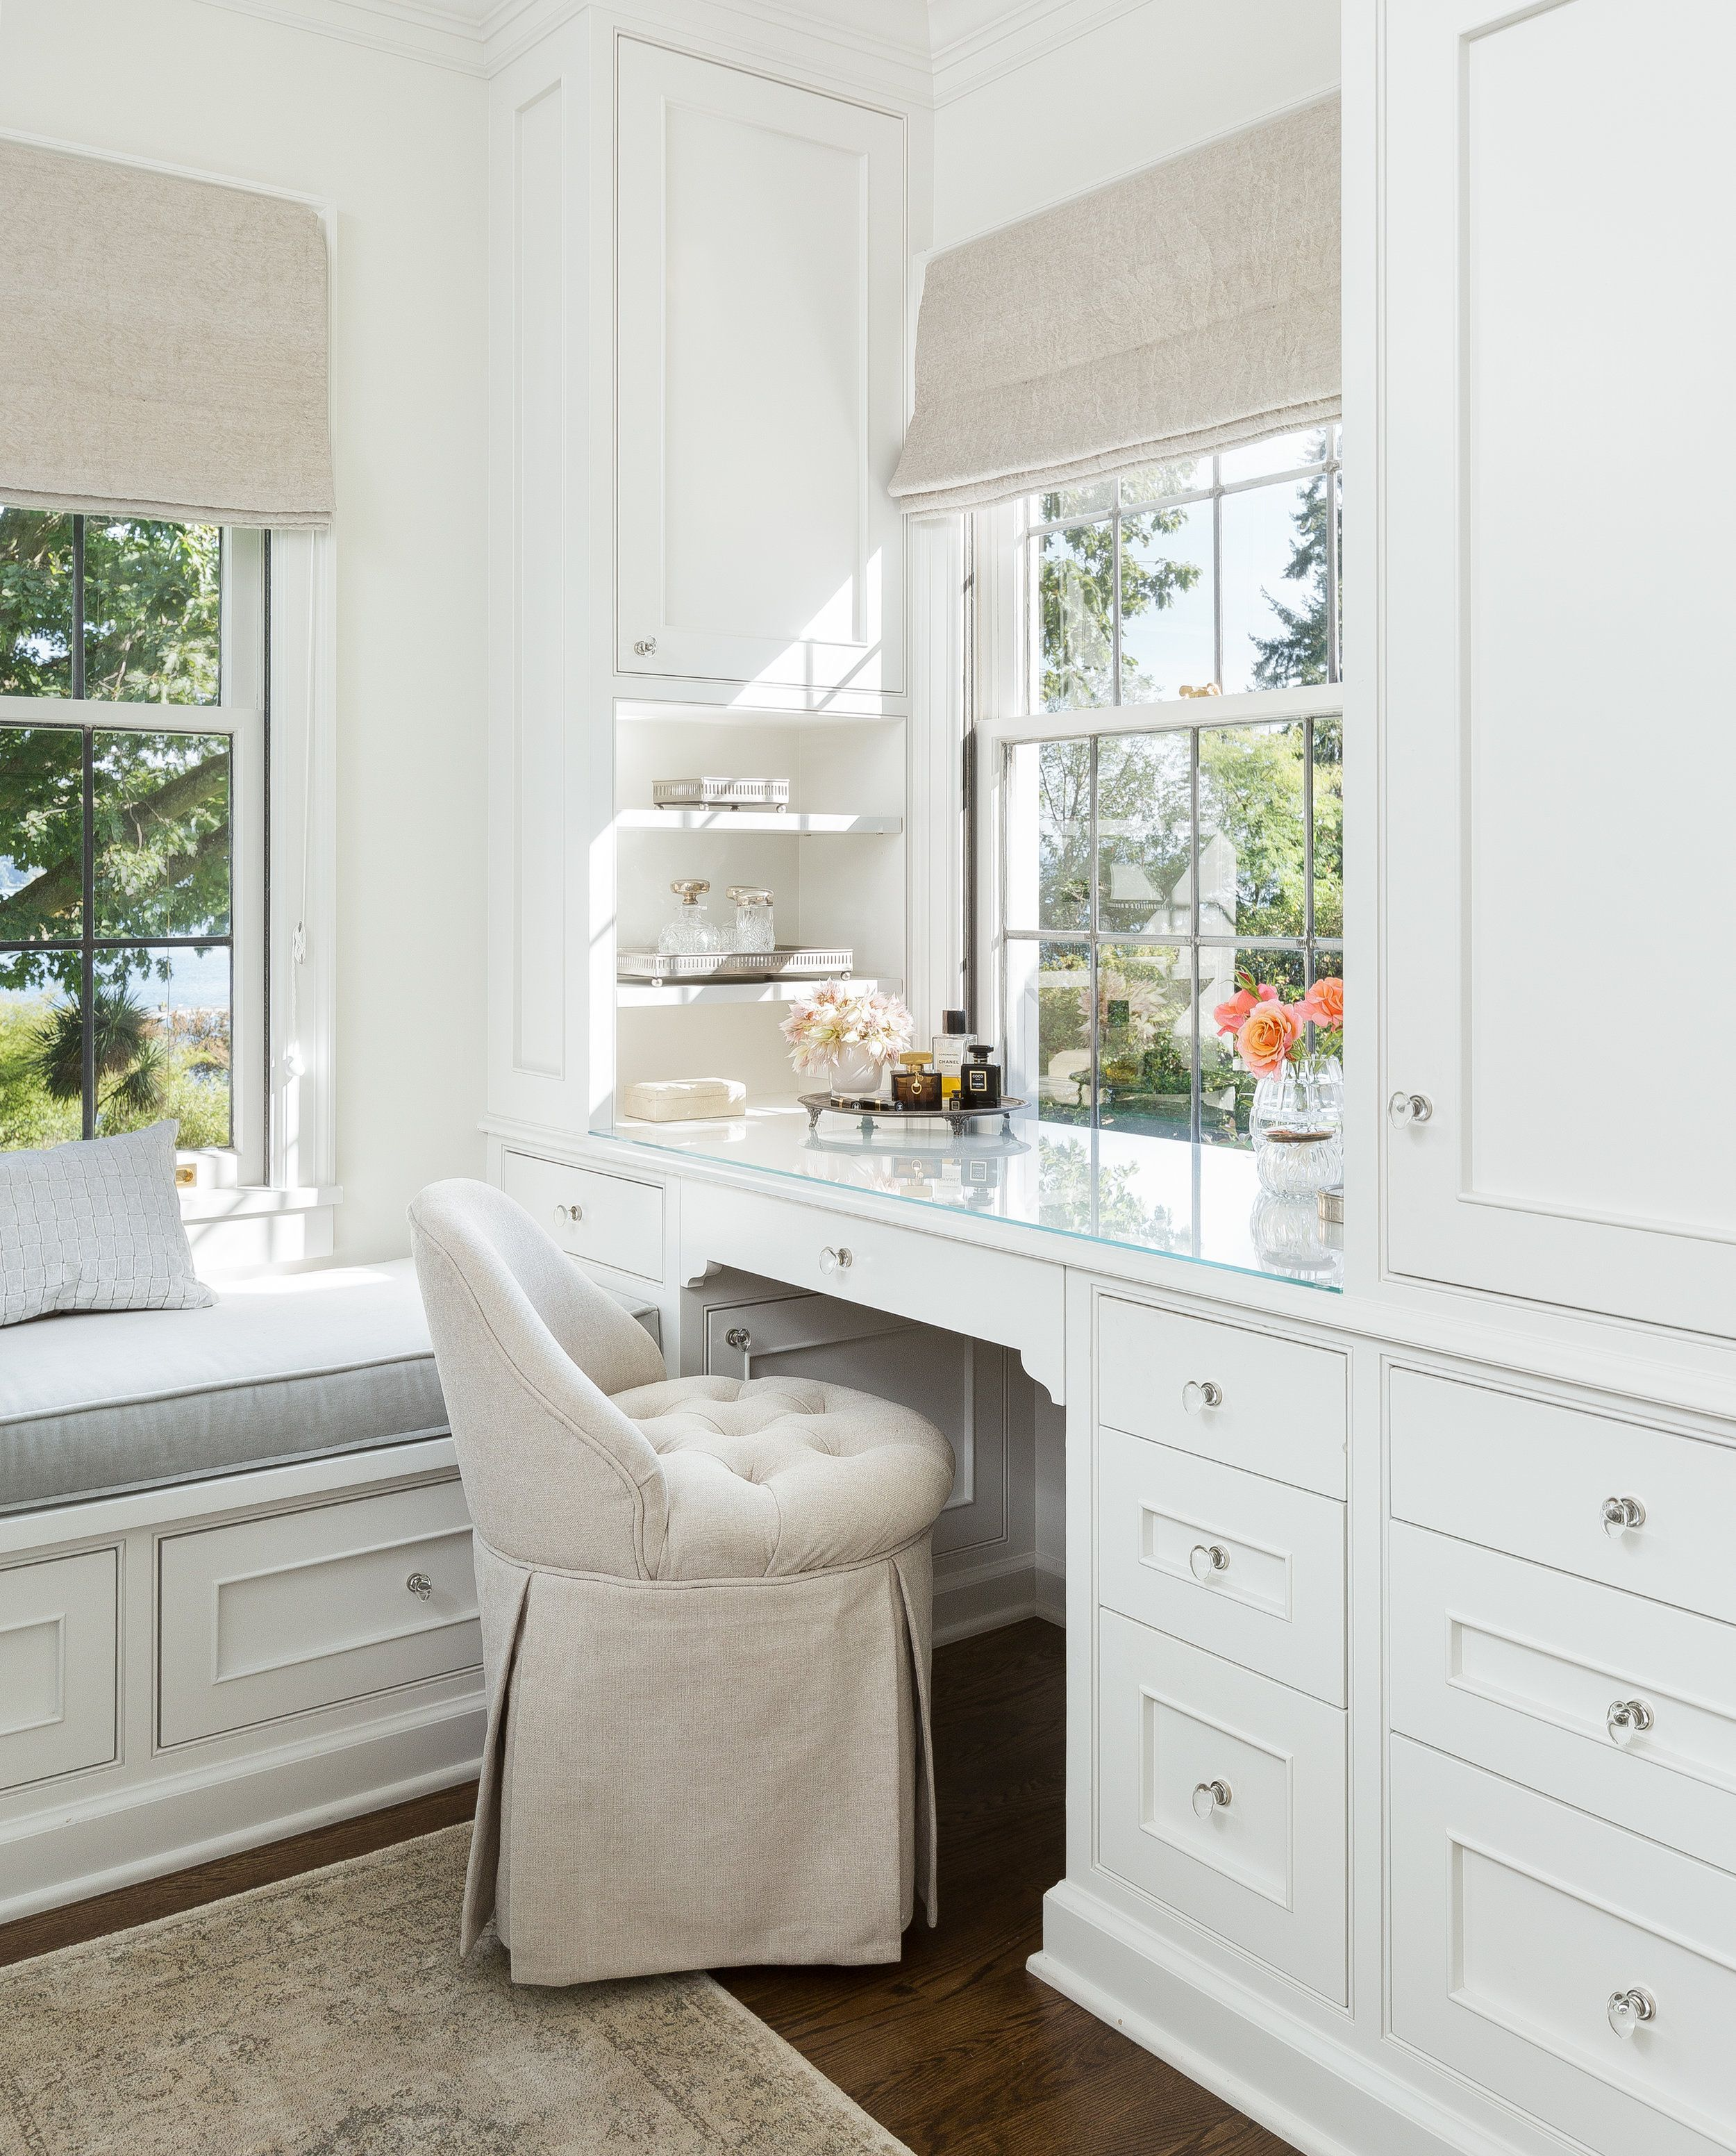 Jennie_Gruss_CMM4.jpg Bedroom vanity, Built in dressing